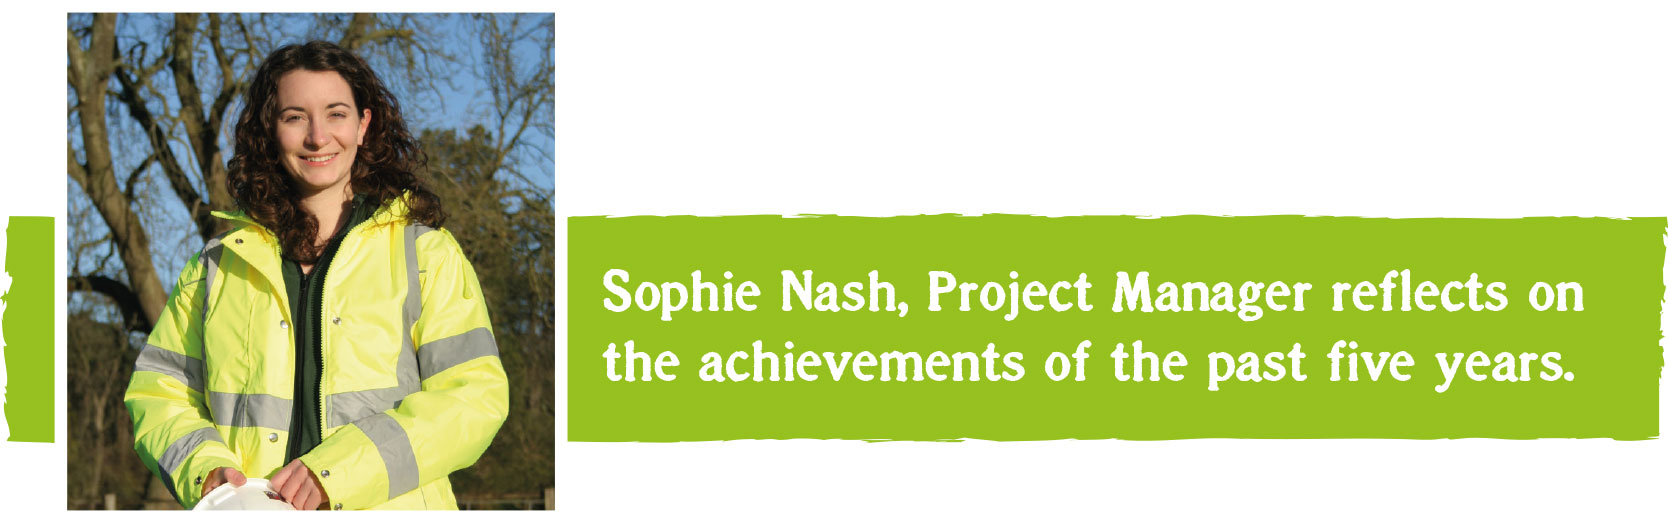 Sophie Nash, Project Manager reflects on the achievements of the past five years